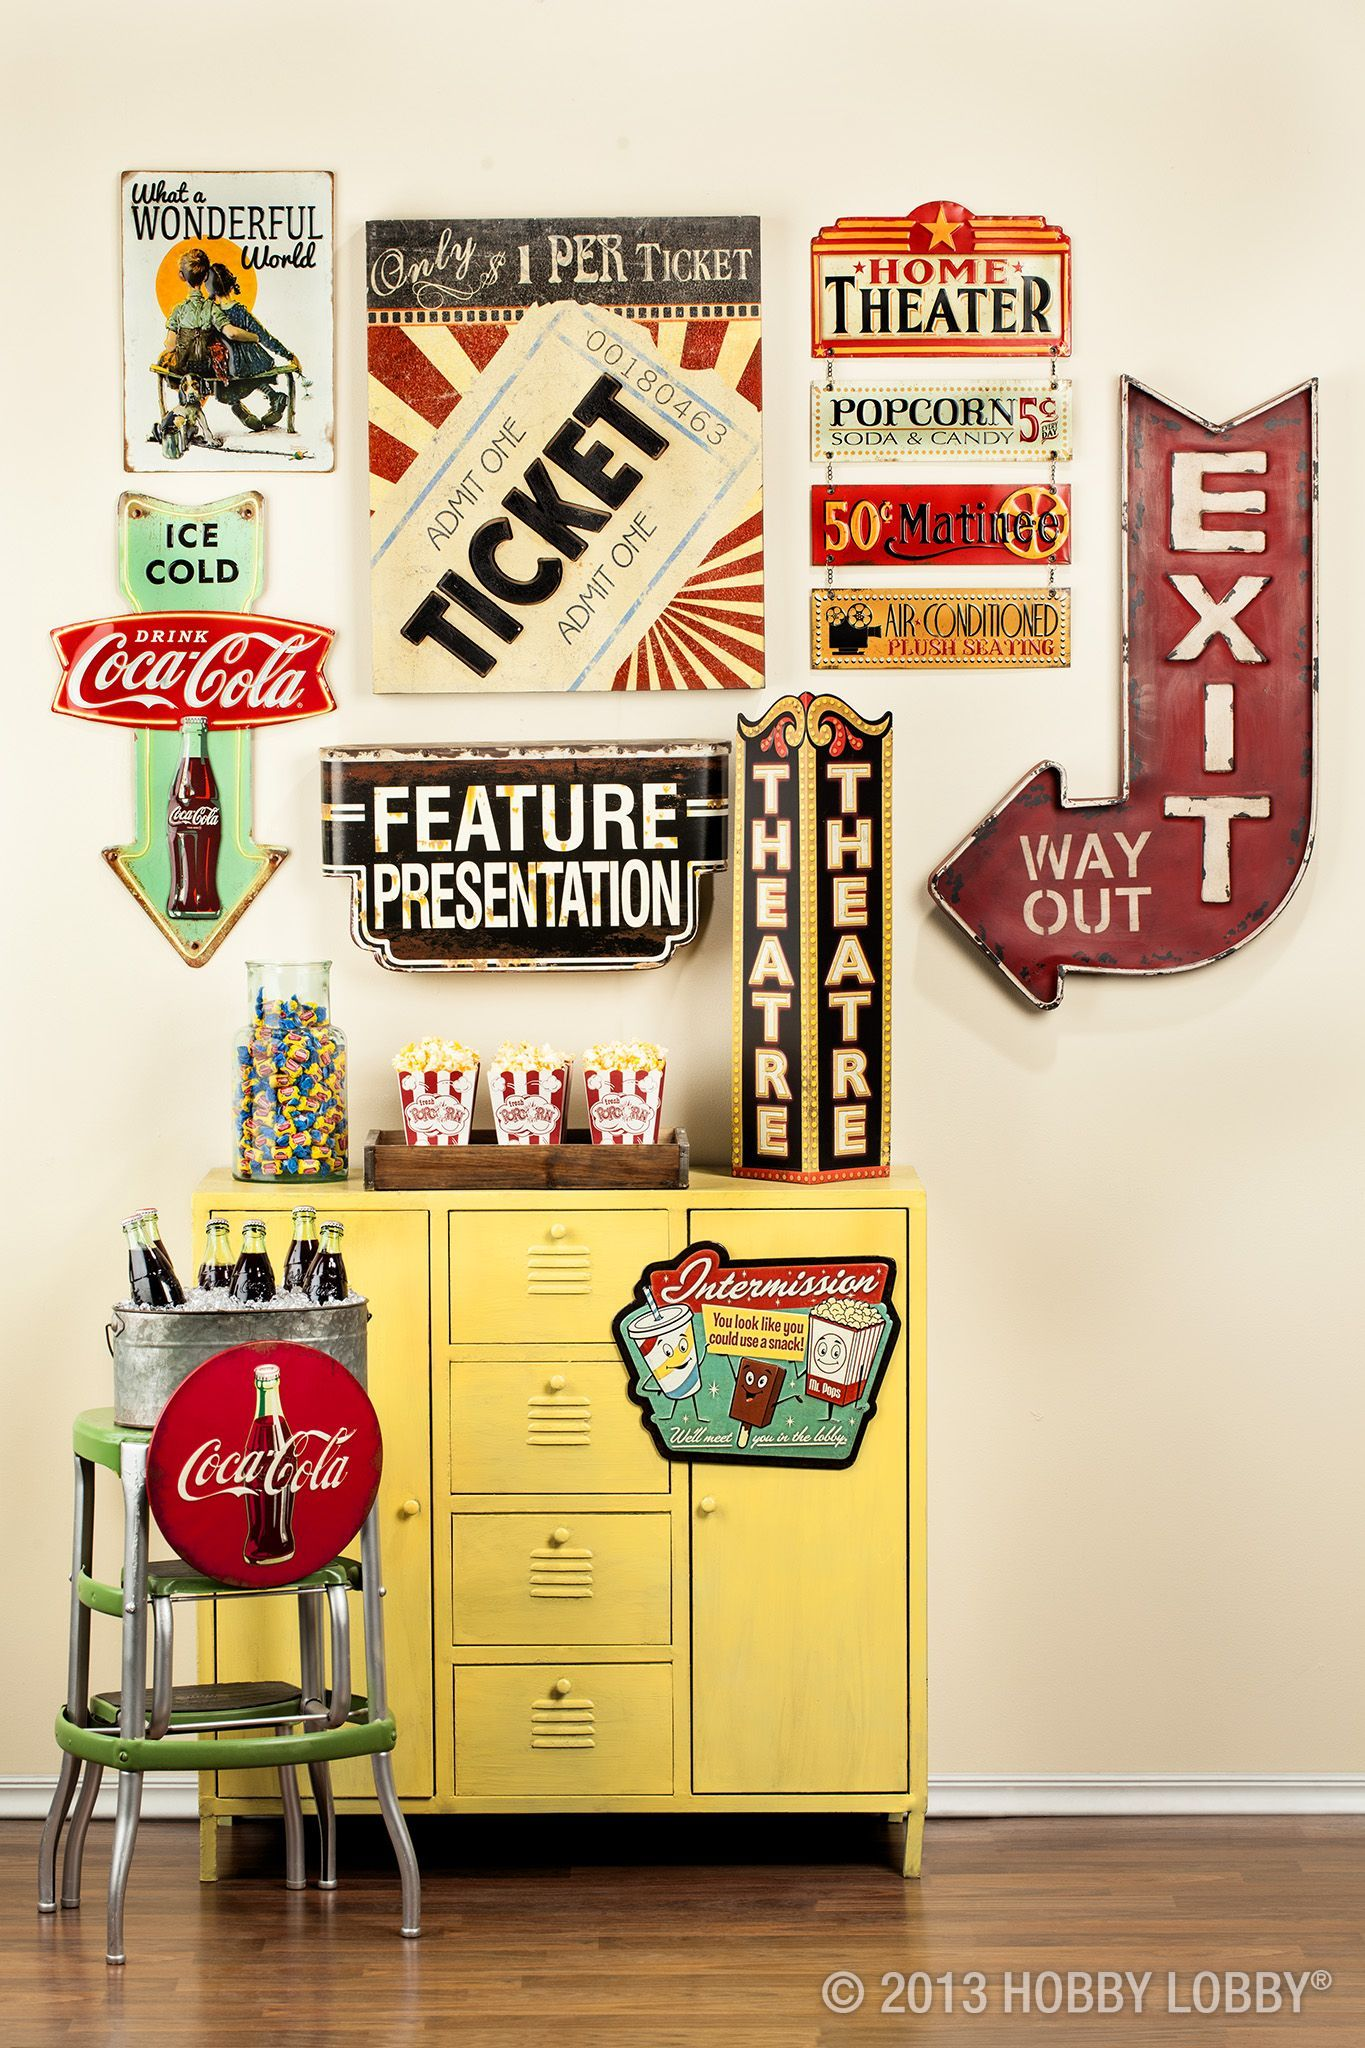 Planning an Oscars party? This vintage movie-themed decor is a great ...